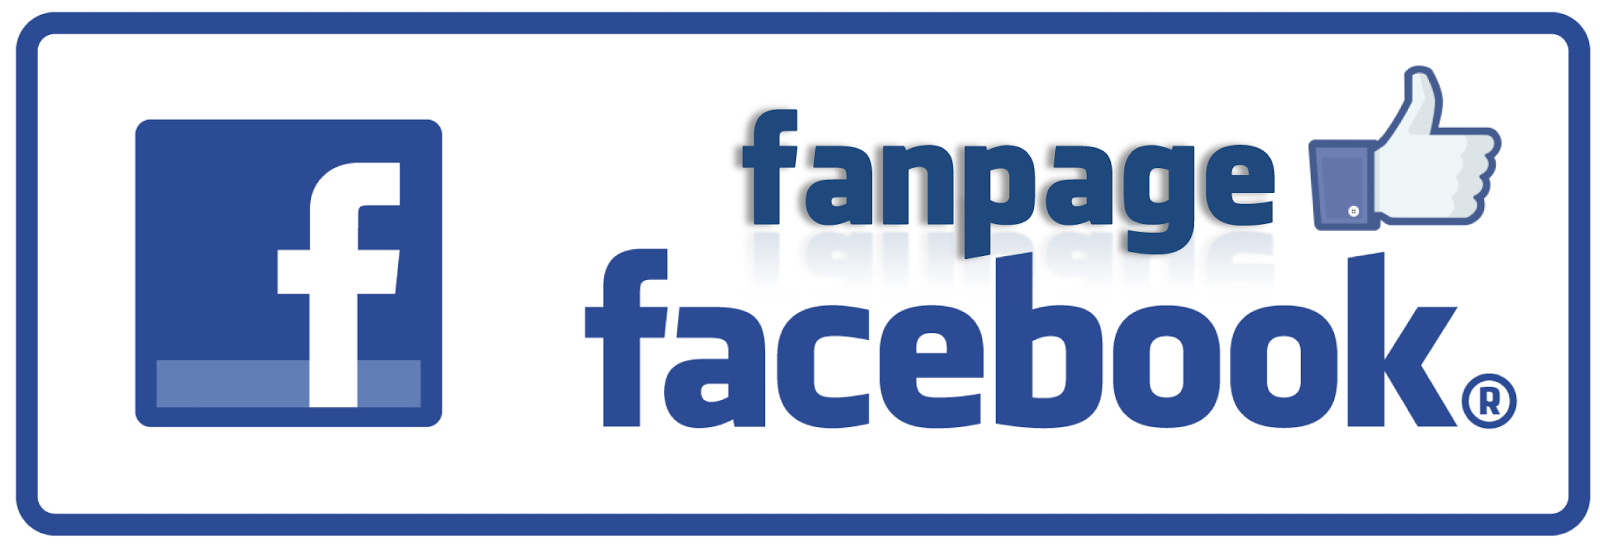 facebook-fan-page-button